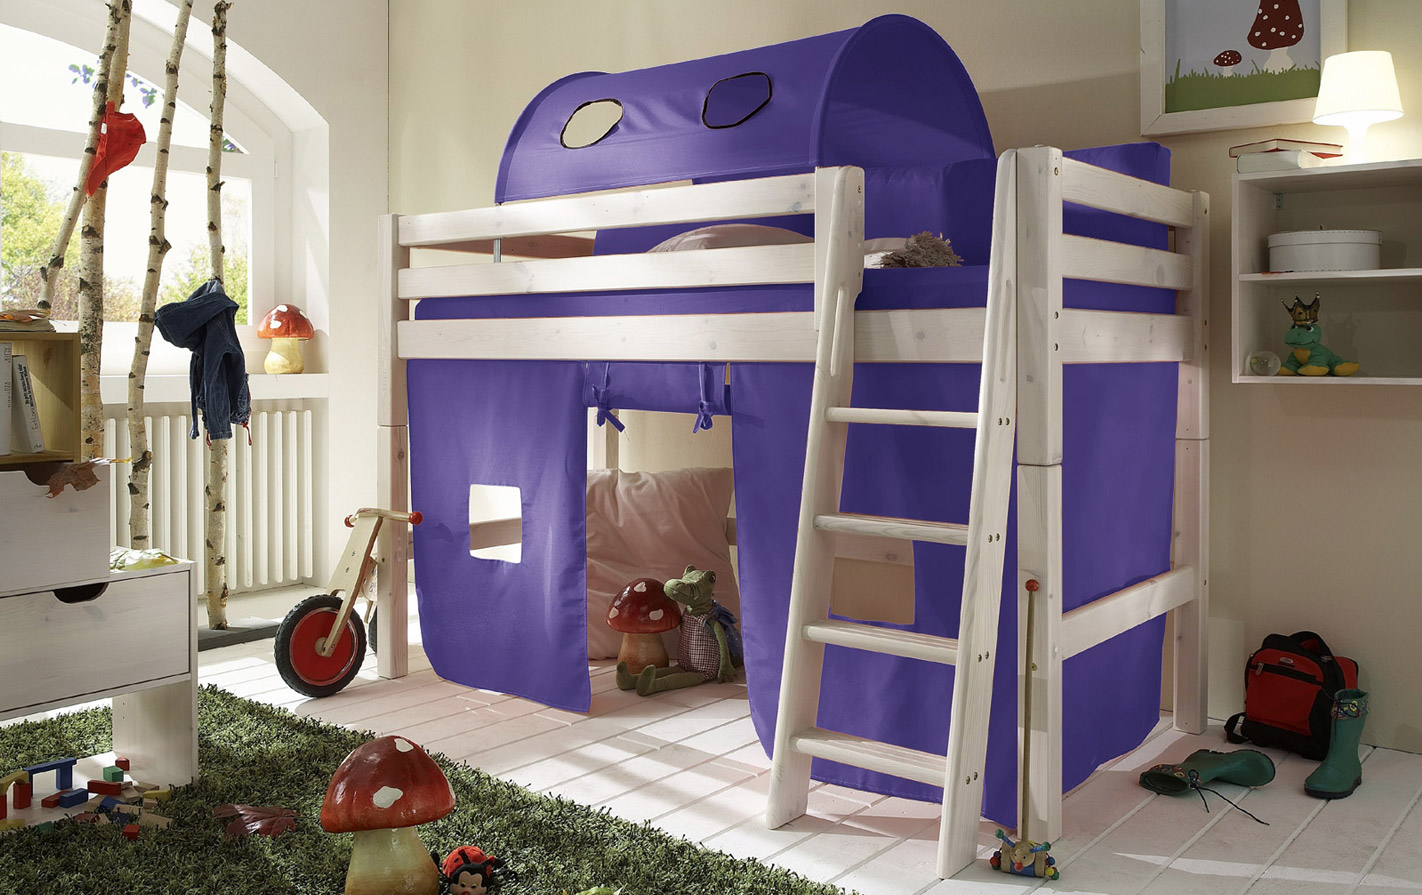 Spielvorhang Kids Paradise Mini in uni lila.